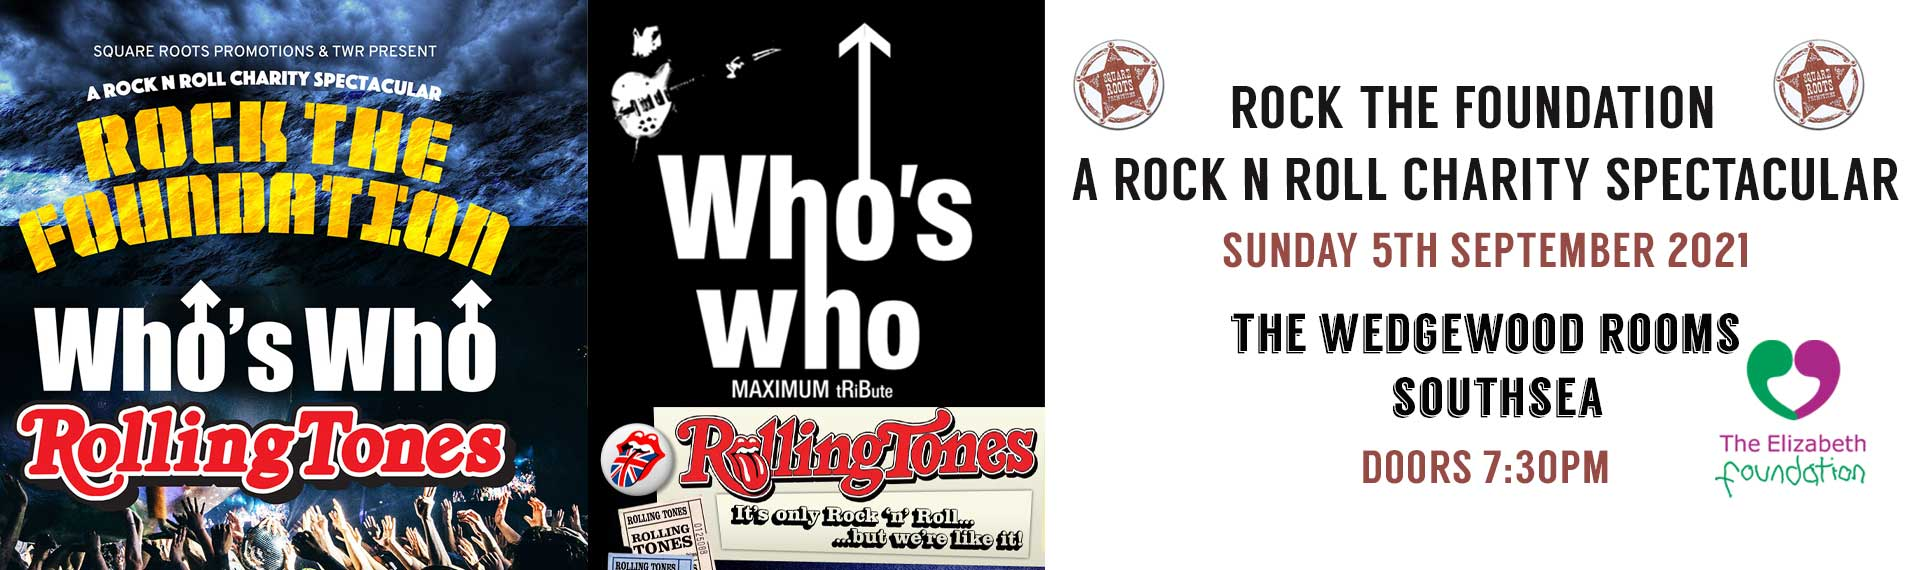 rock-the-foundation-banner